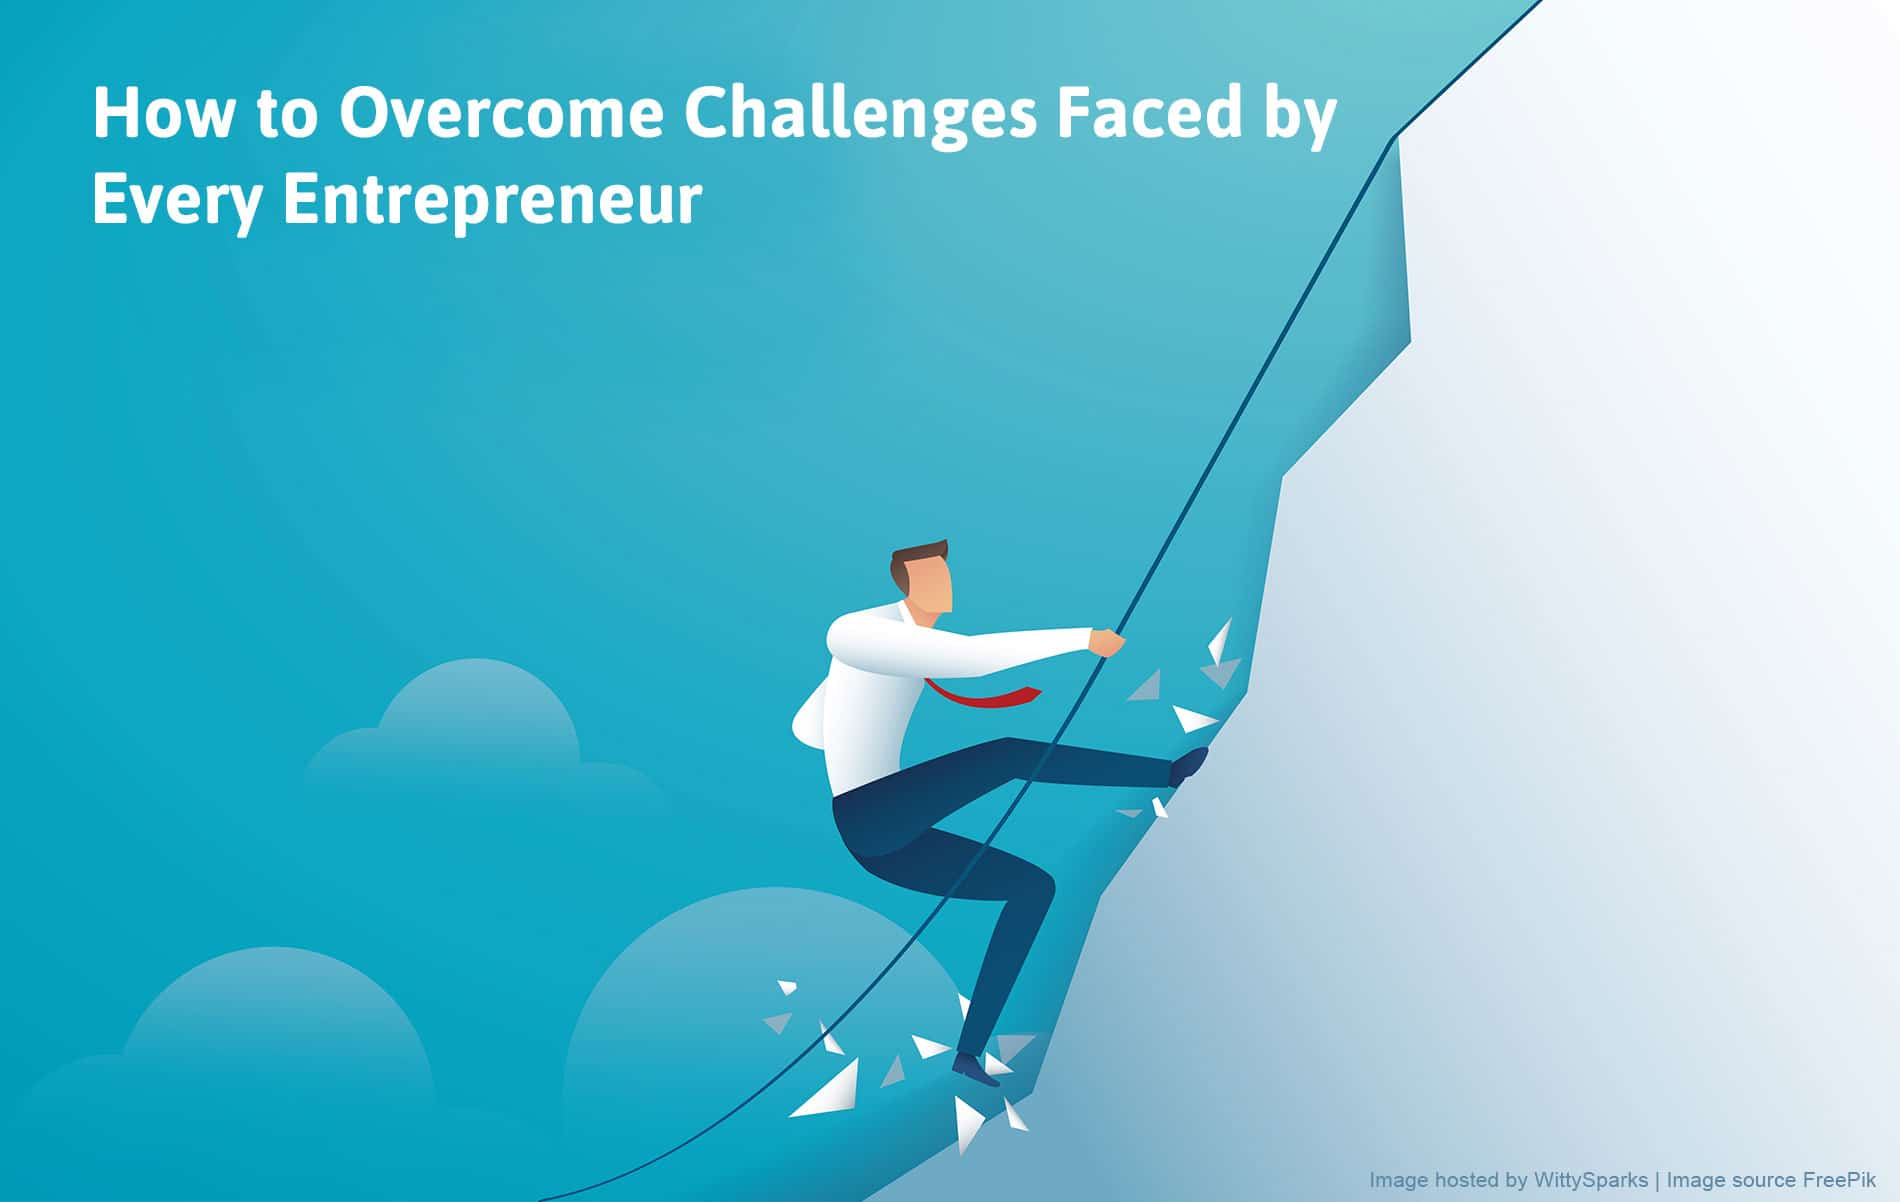 Overcome challenges faced by every entrepreneur.